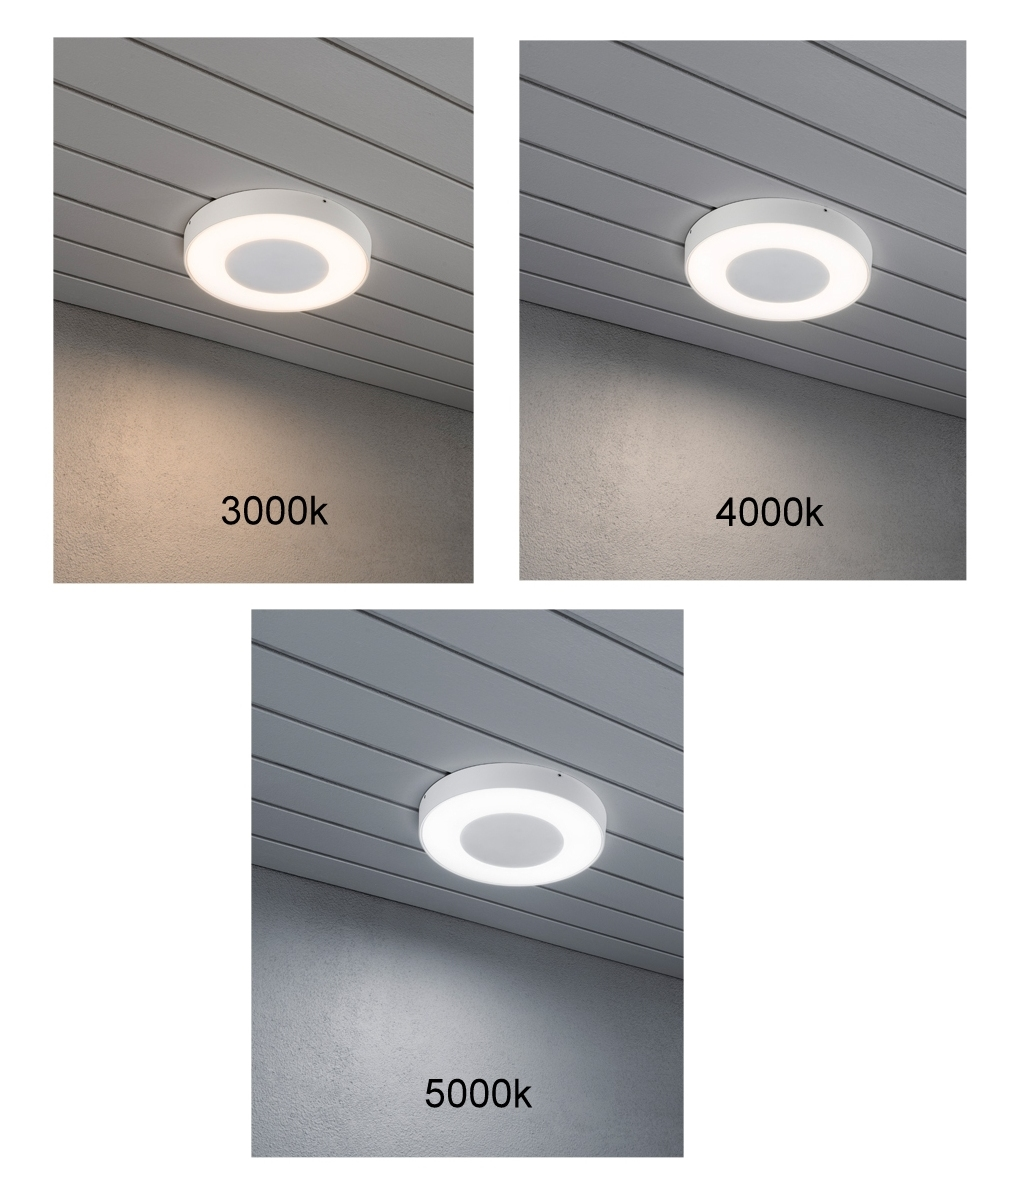 LED ceiling or wall light for exterior use with a remote control